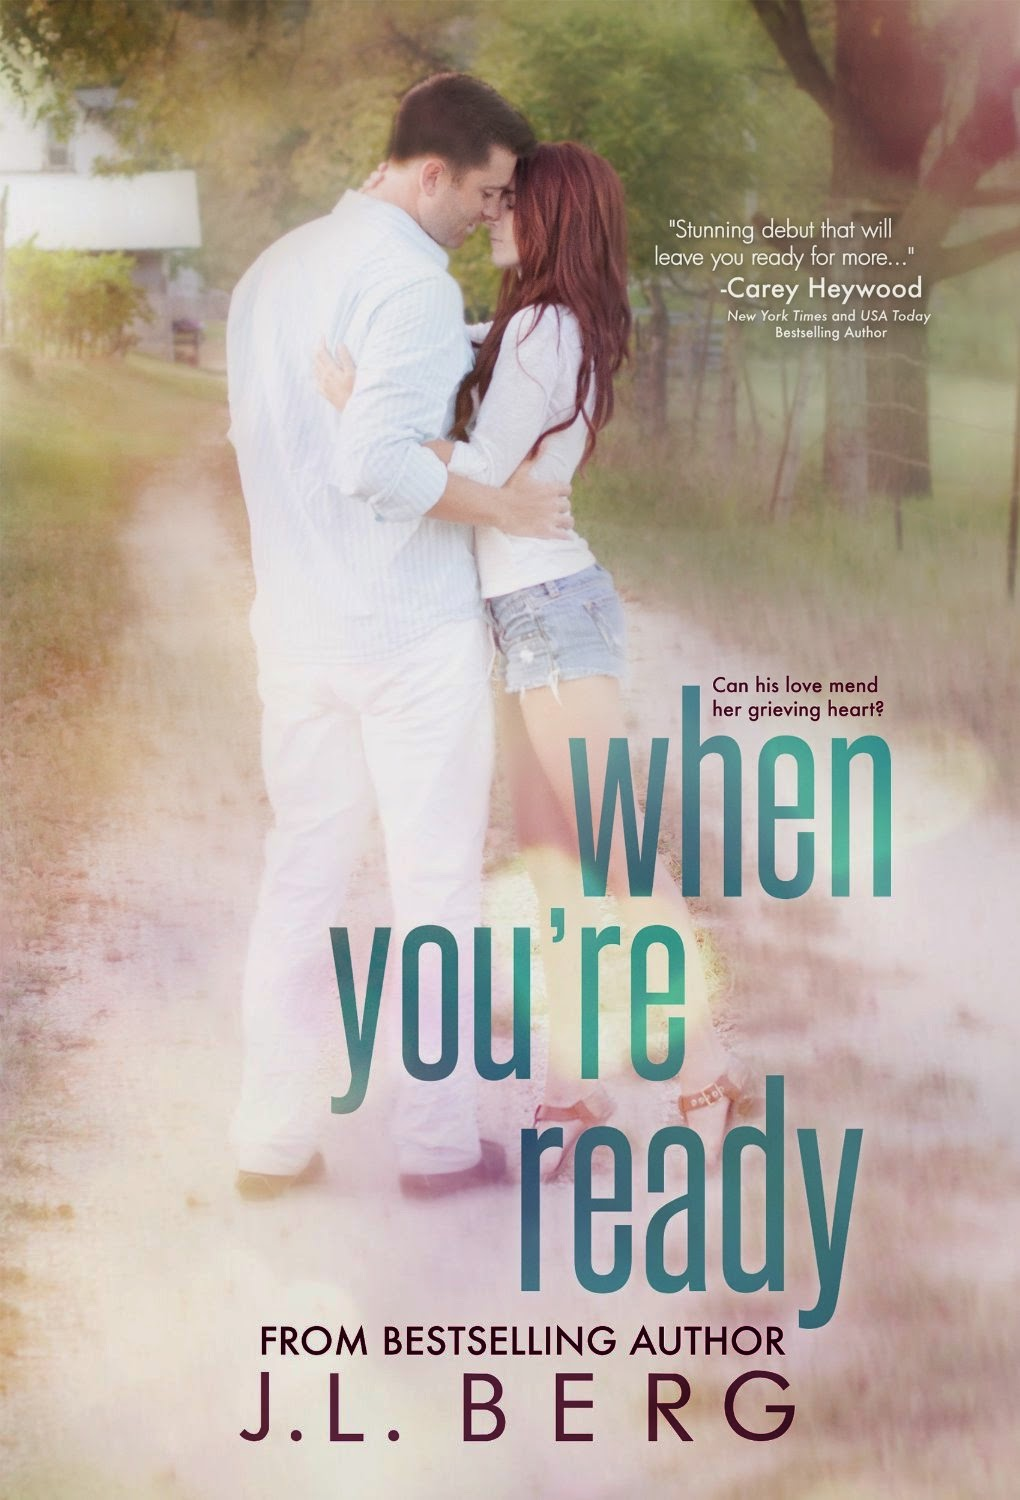 http://readsallthebooks.blogspot.com/2014/11/when-youre-ready-review.html